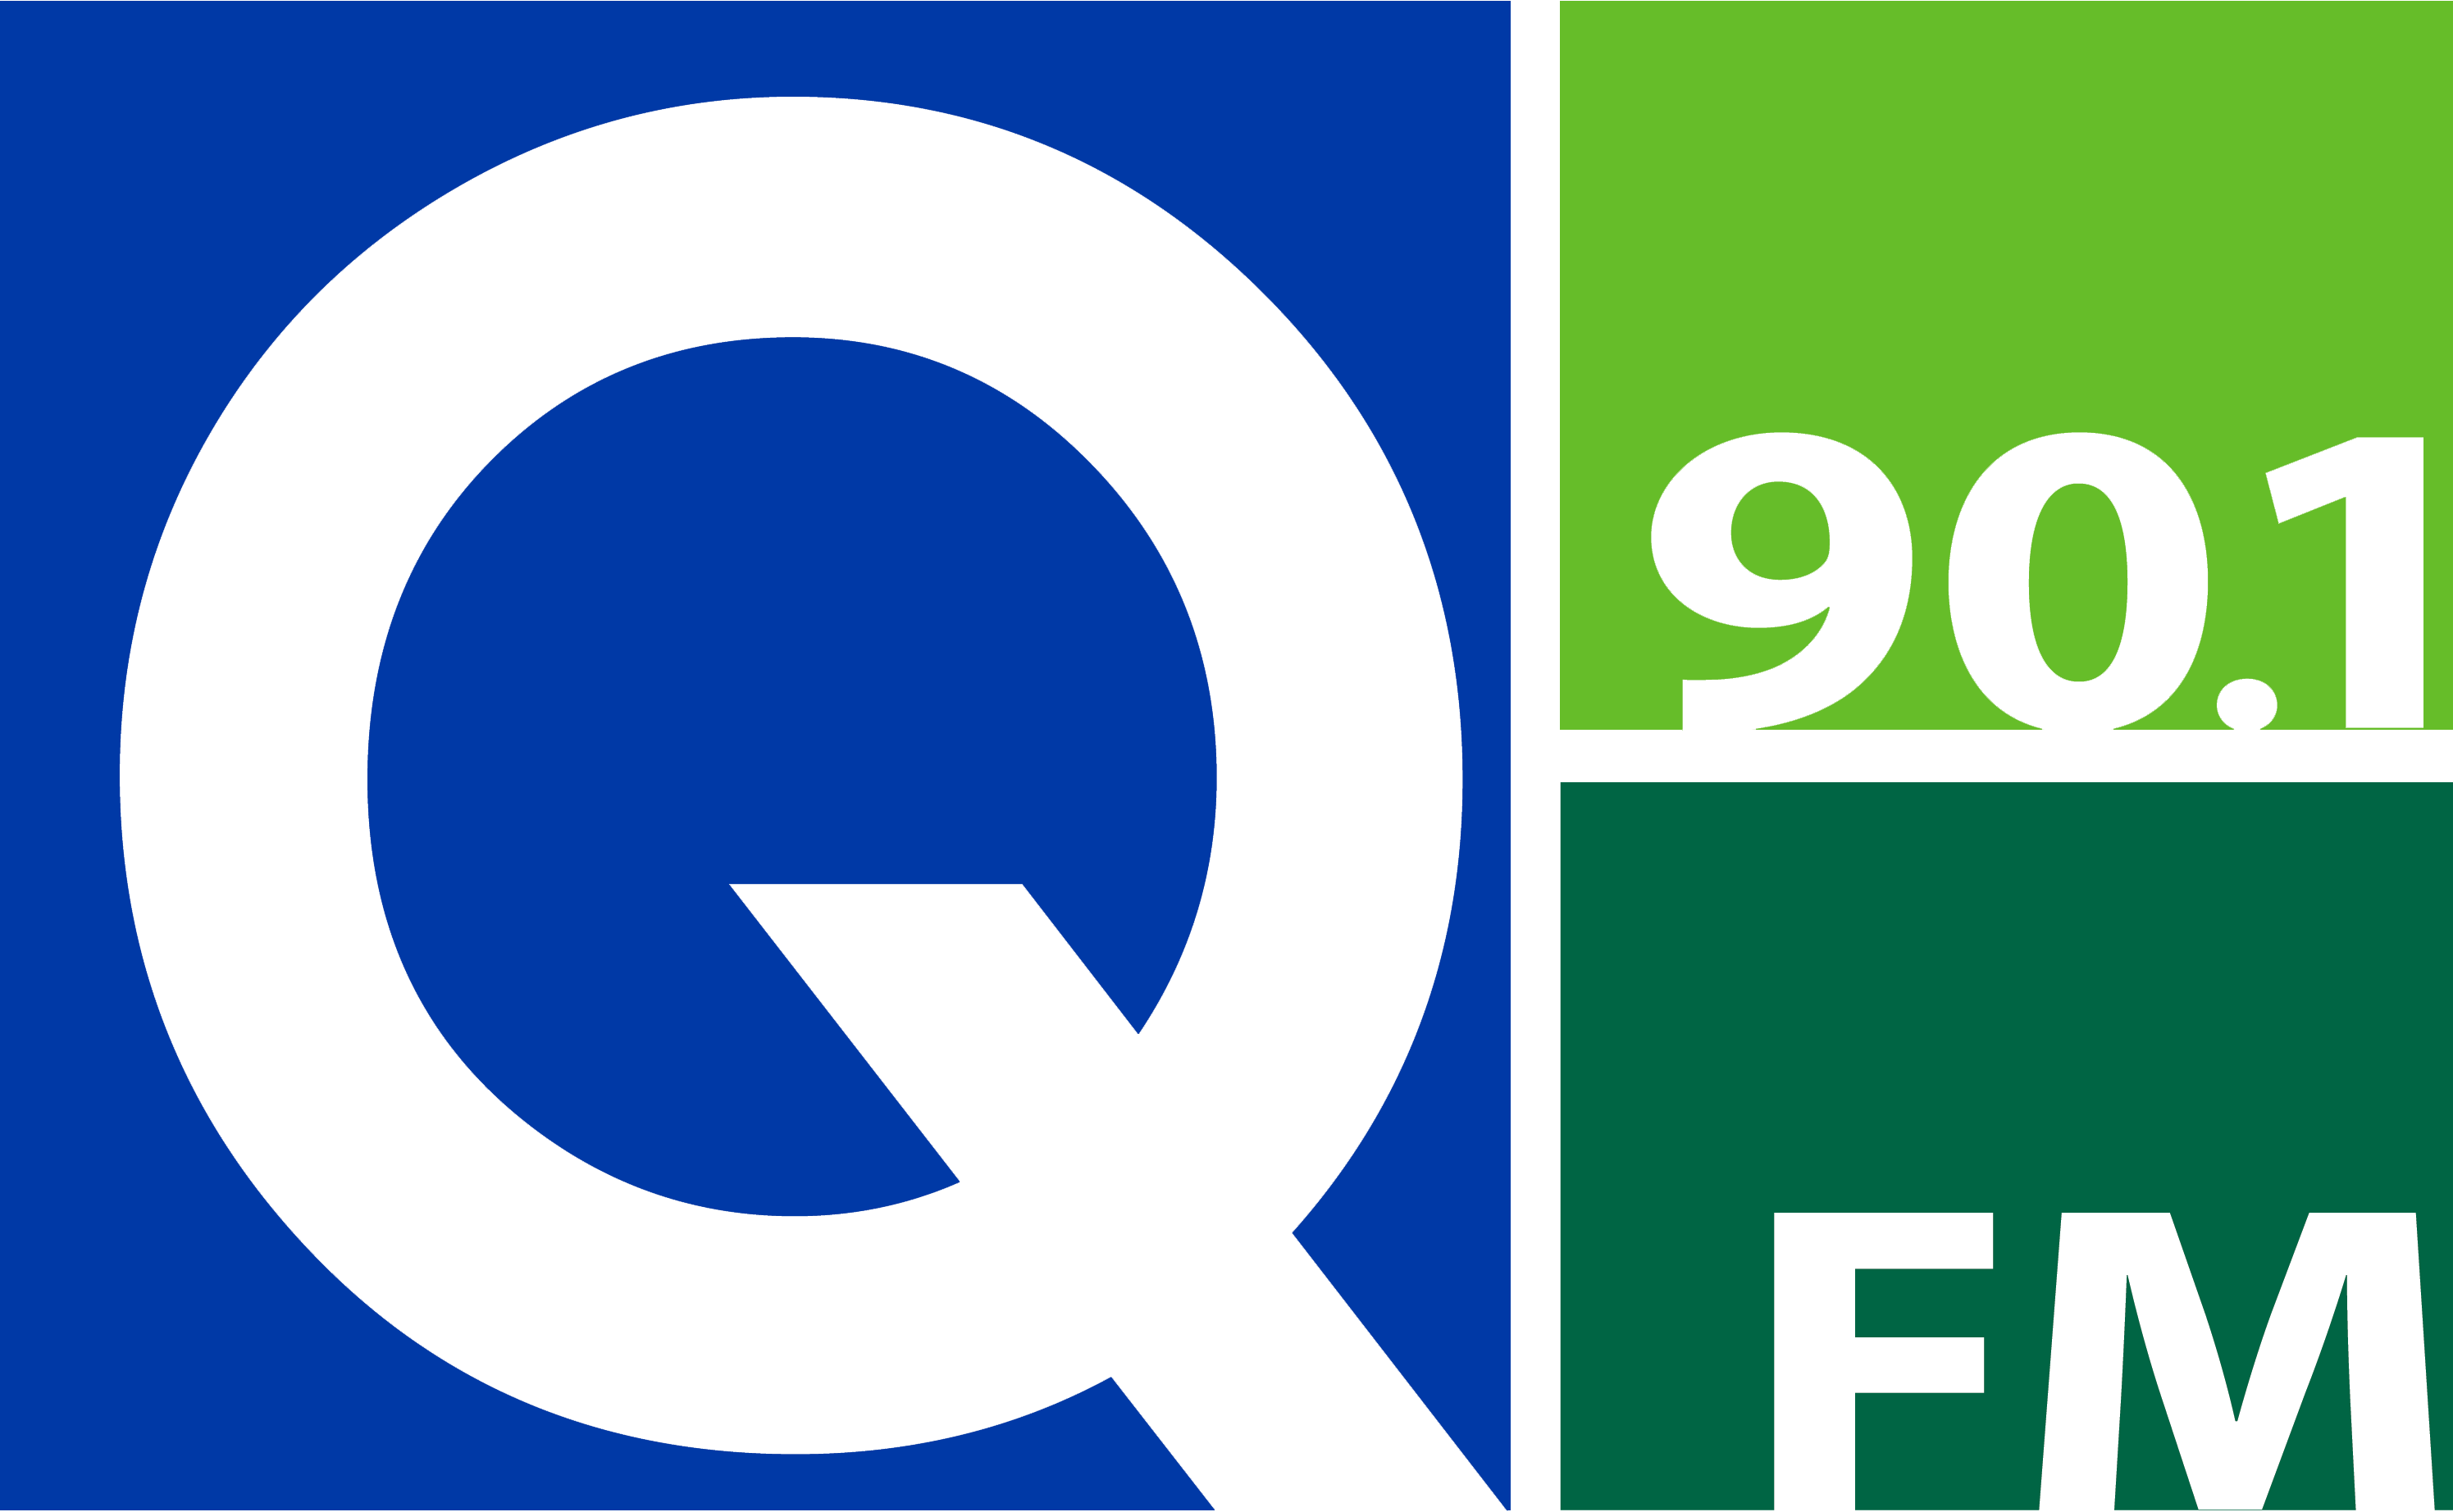 Q-90.1 FM Logo without Delta College Name